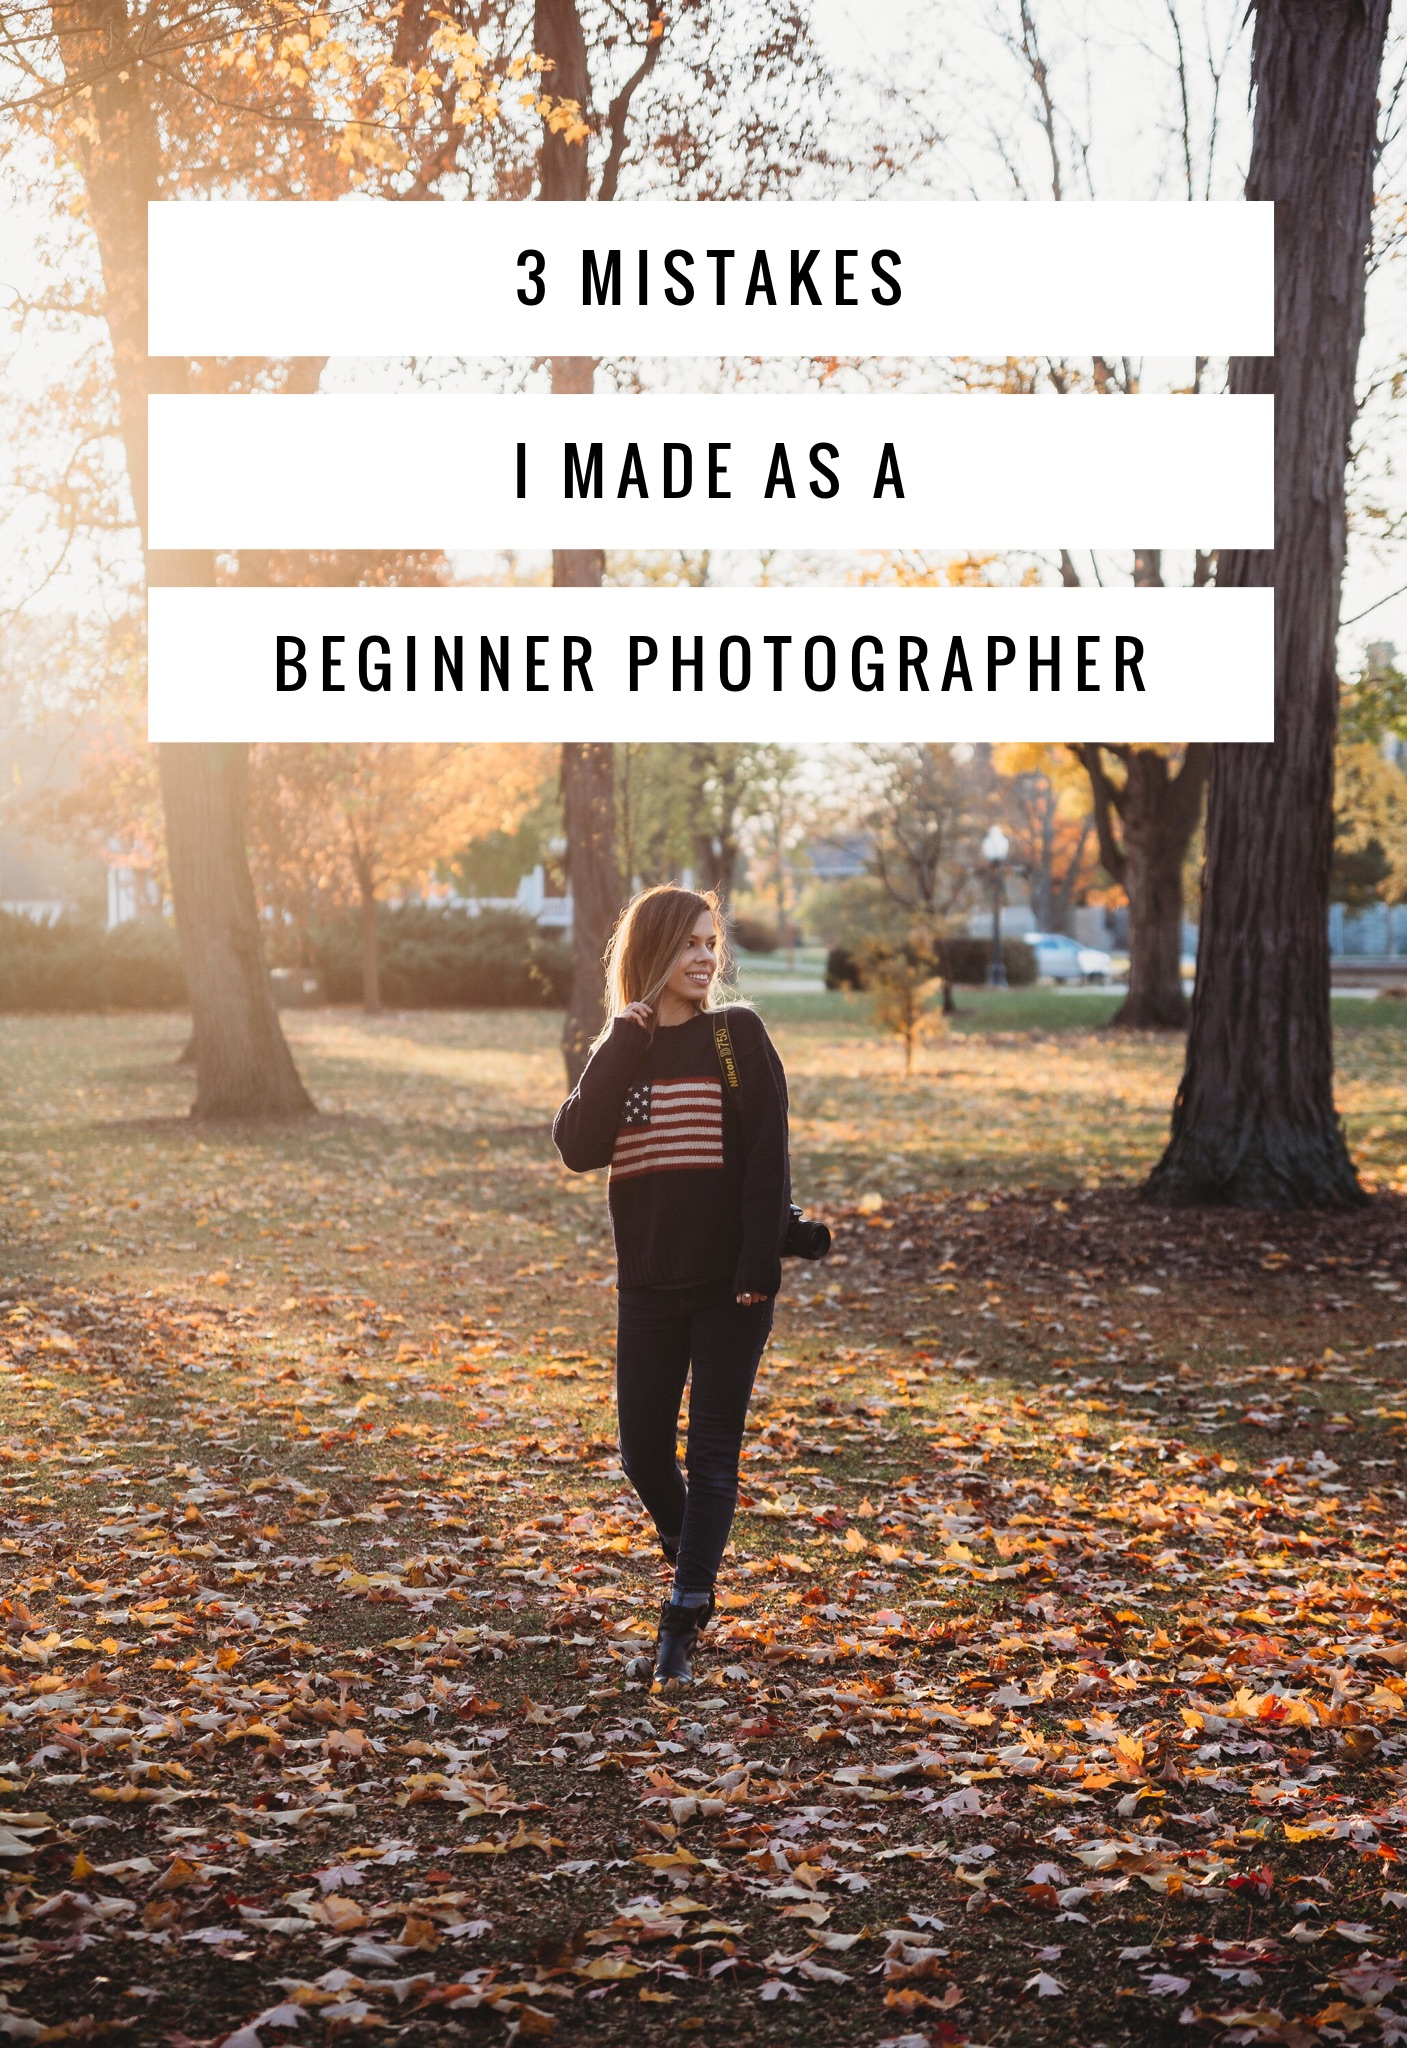 3 MISTAKES I MADE AS A BEGINNER PHOTOGRAPHER – Carlee Secor Photography